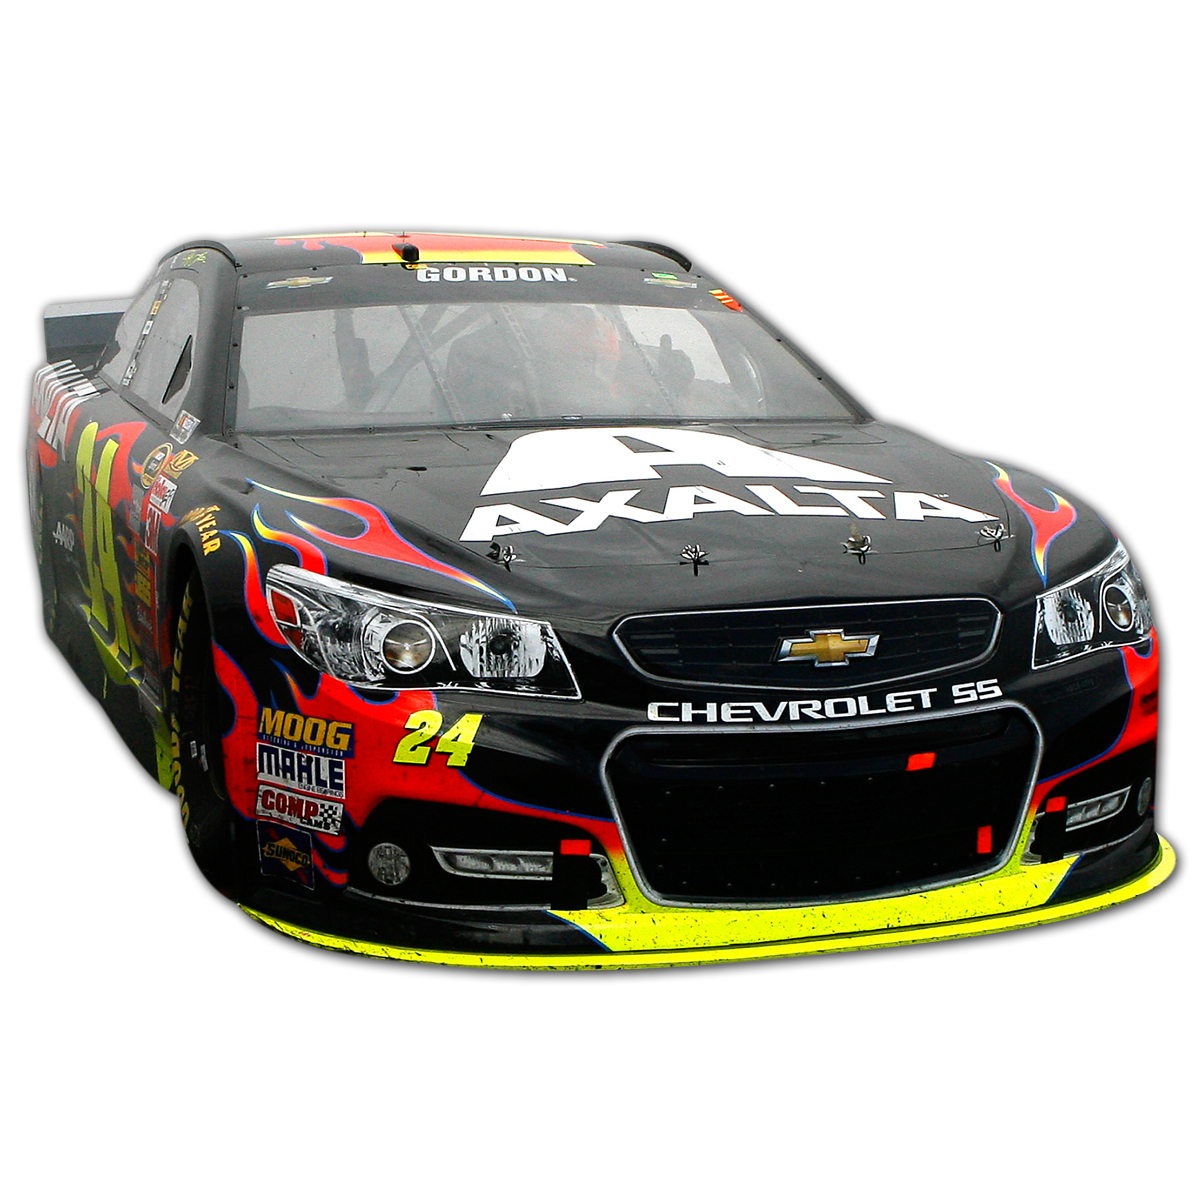 Jeff Gordon #24 2014 Brickyard Race Winner 1:24 Scale Diecast